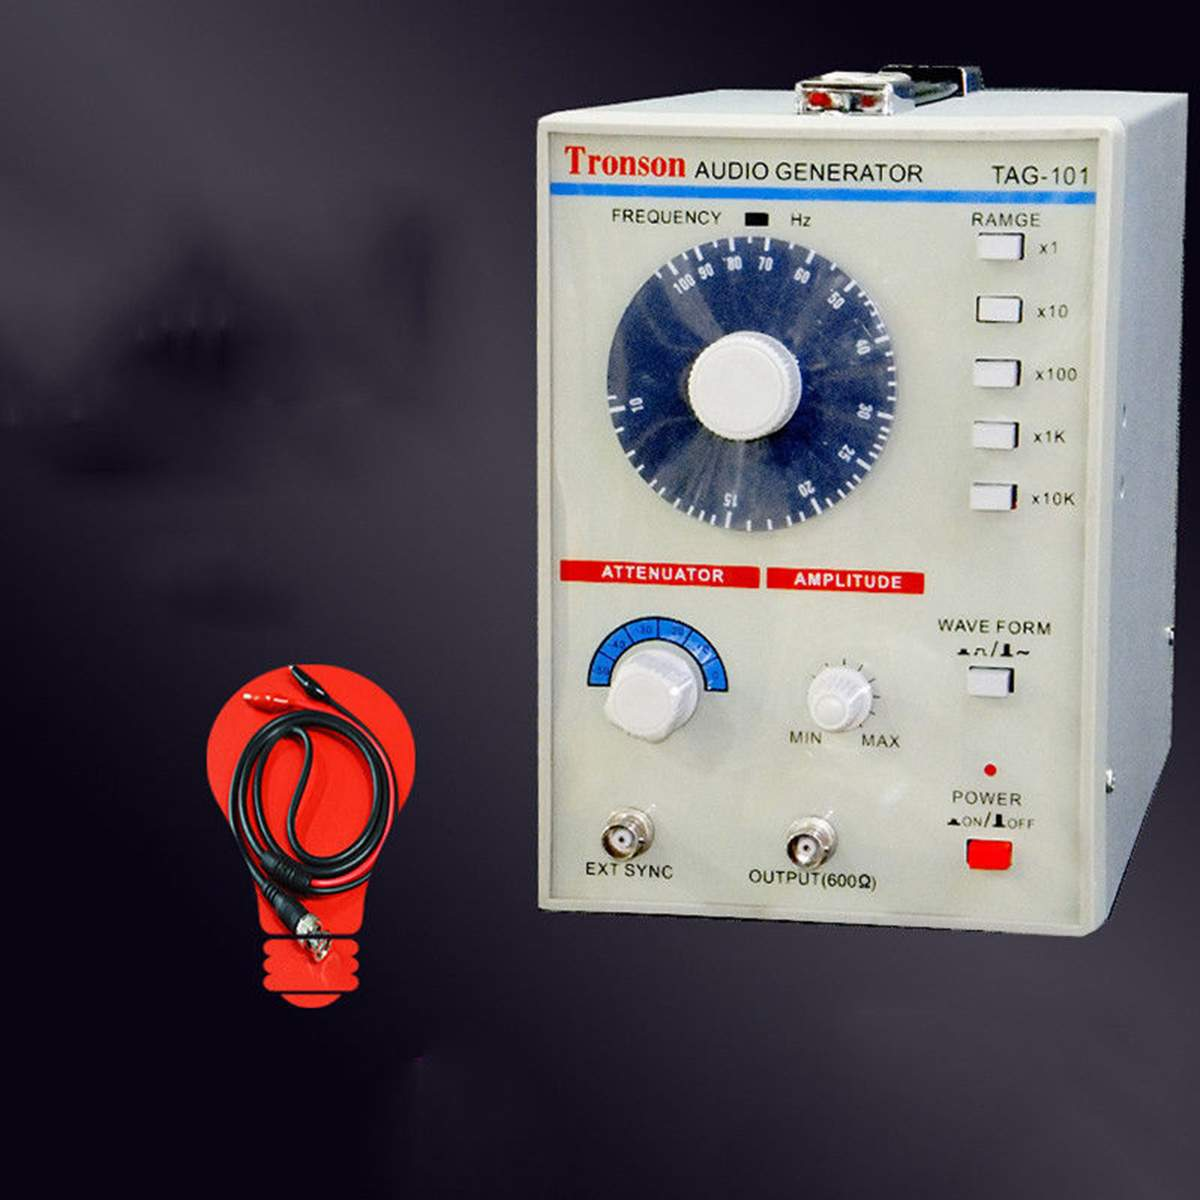 110V/220V Low Frequency Signal Generator 10Hz-1MHz Signal Audio Generator Source Producer Electronic Measuring Instrument Tools110V/220V Low Frequency Signal Generator 10Hz-1MHz Signal Audio Generator Source Producer Electronic Measuring Instrument Tools